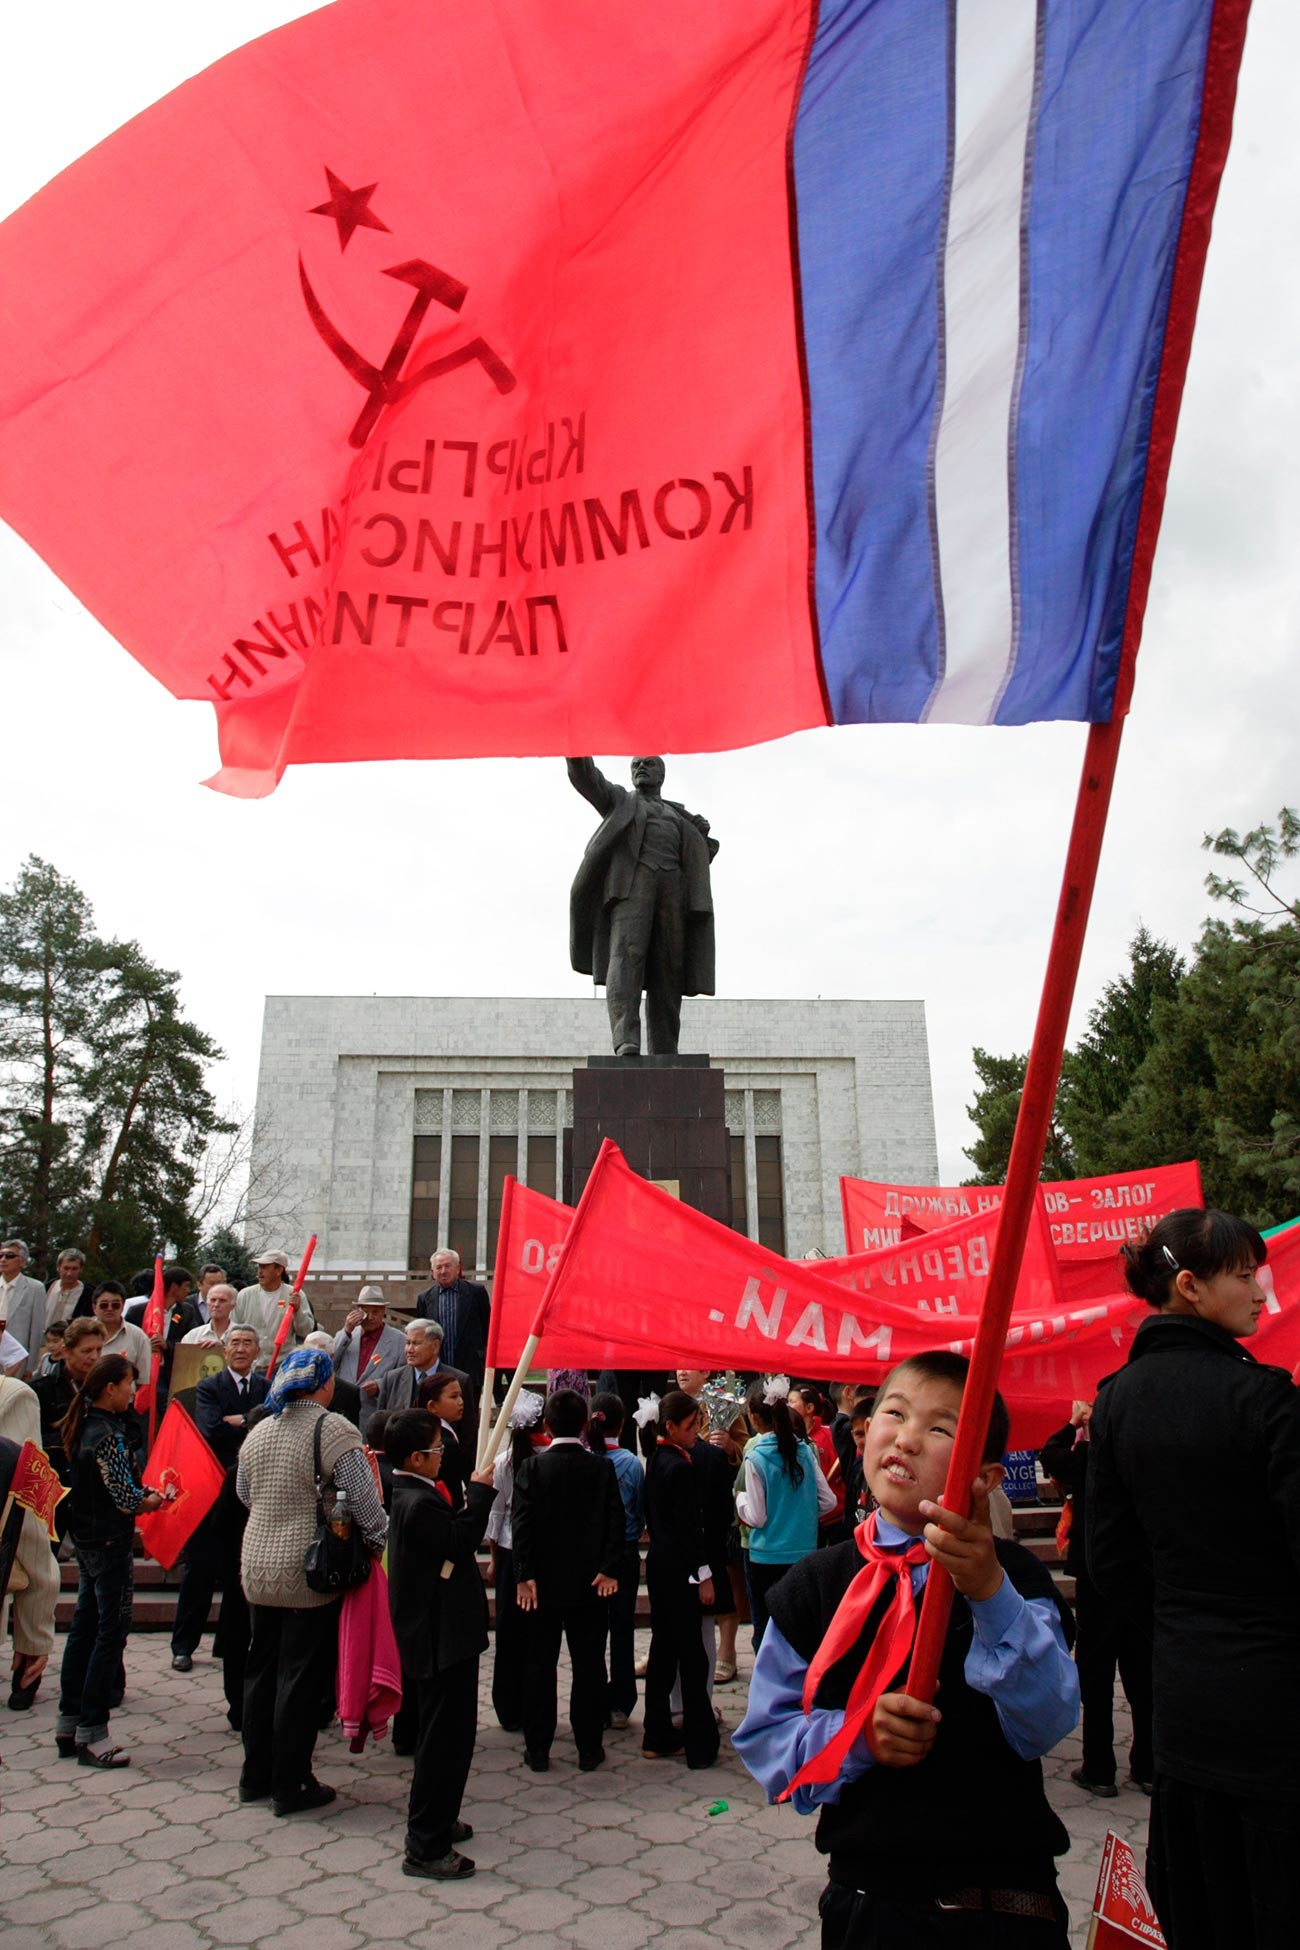 A boy waves a Communist flag during a rally marking International Workers' Day in Bishkek.